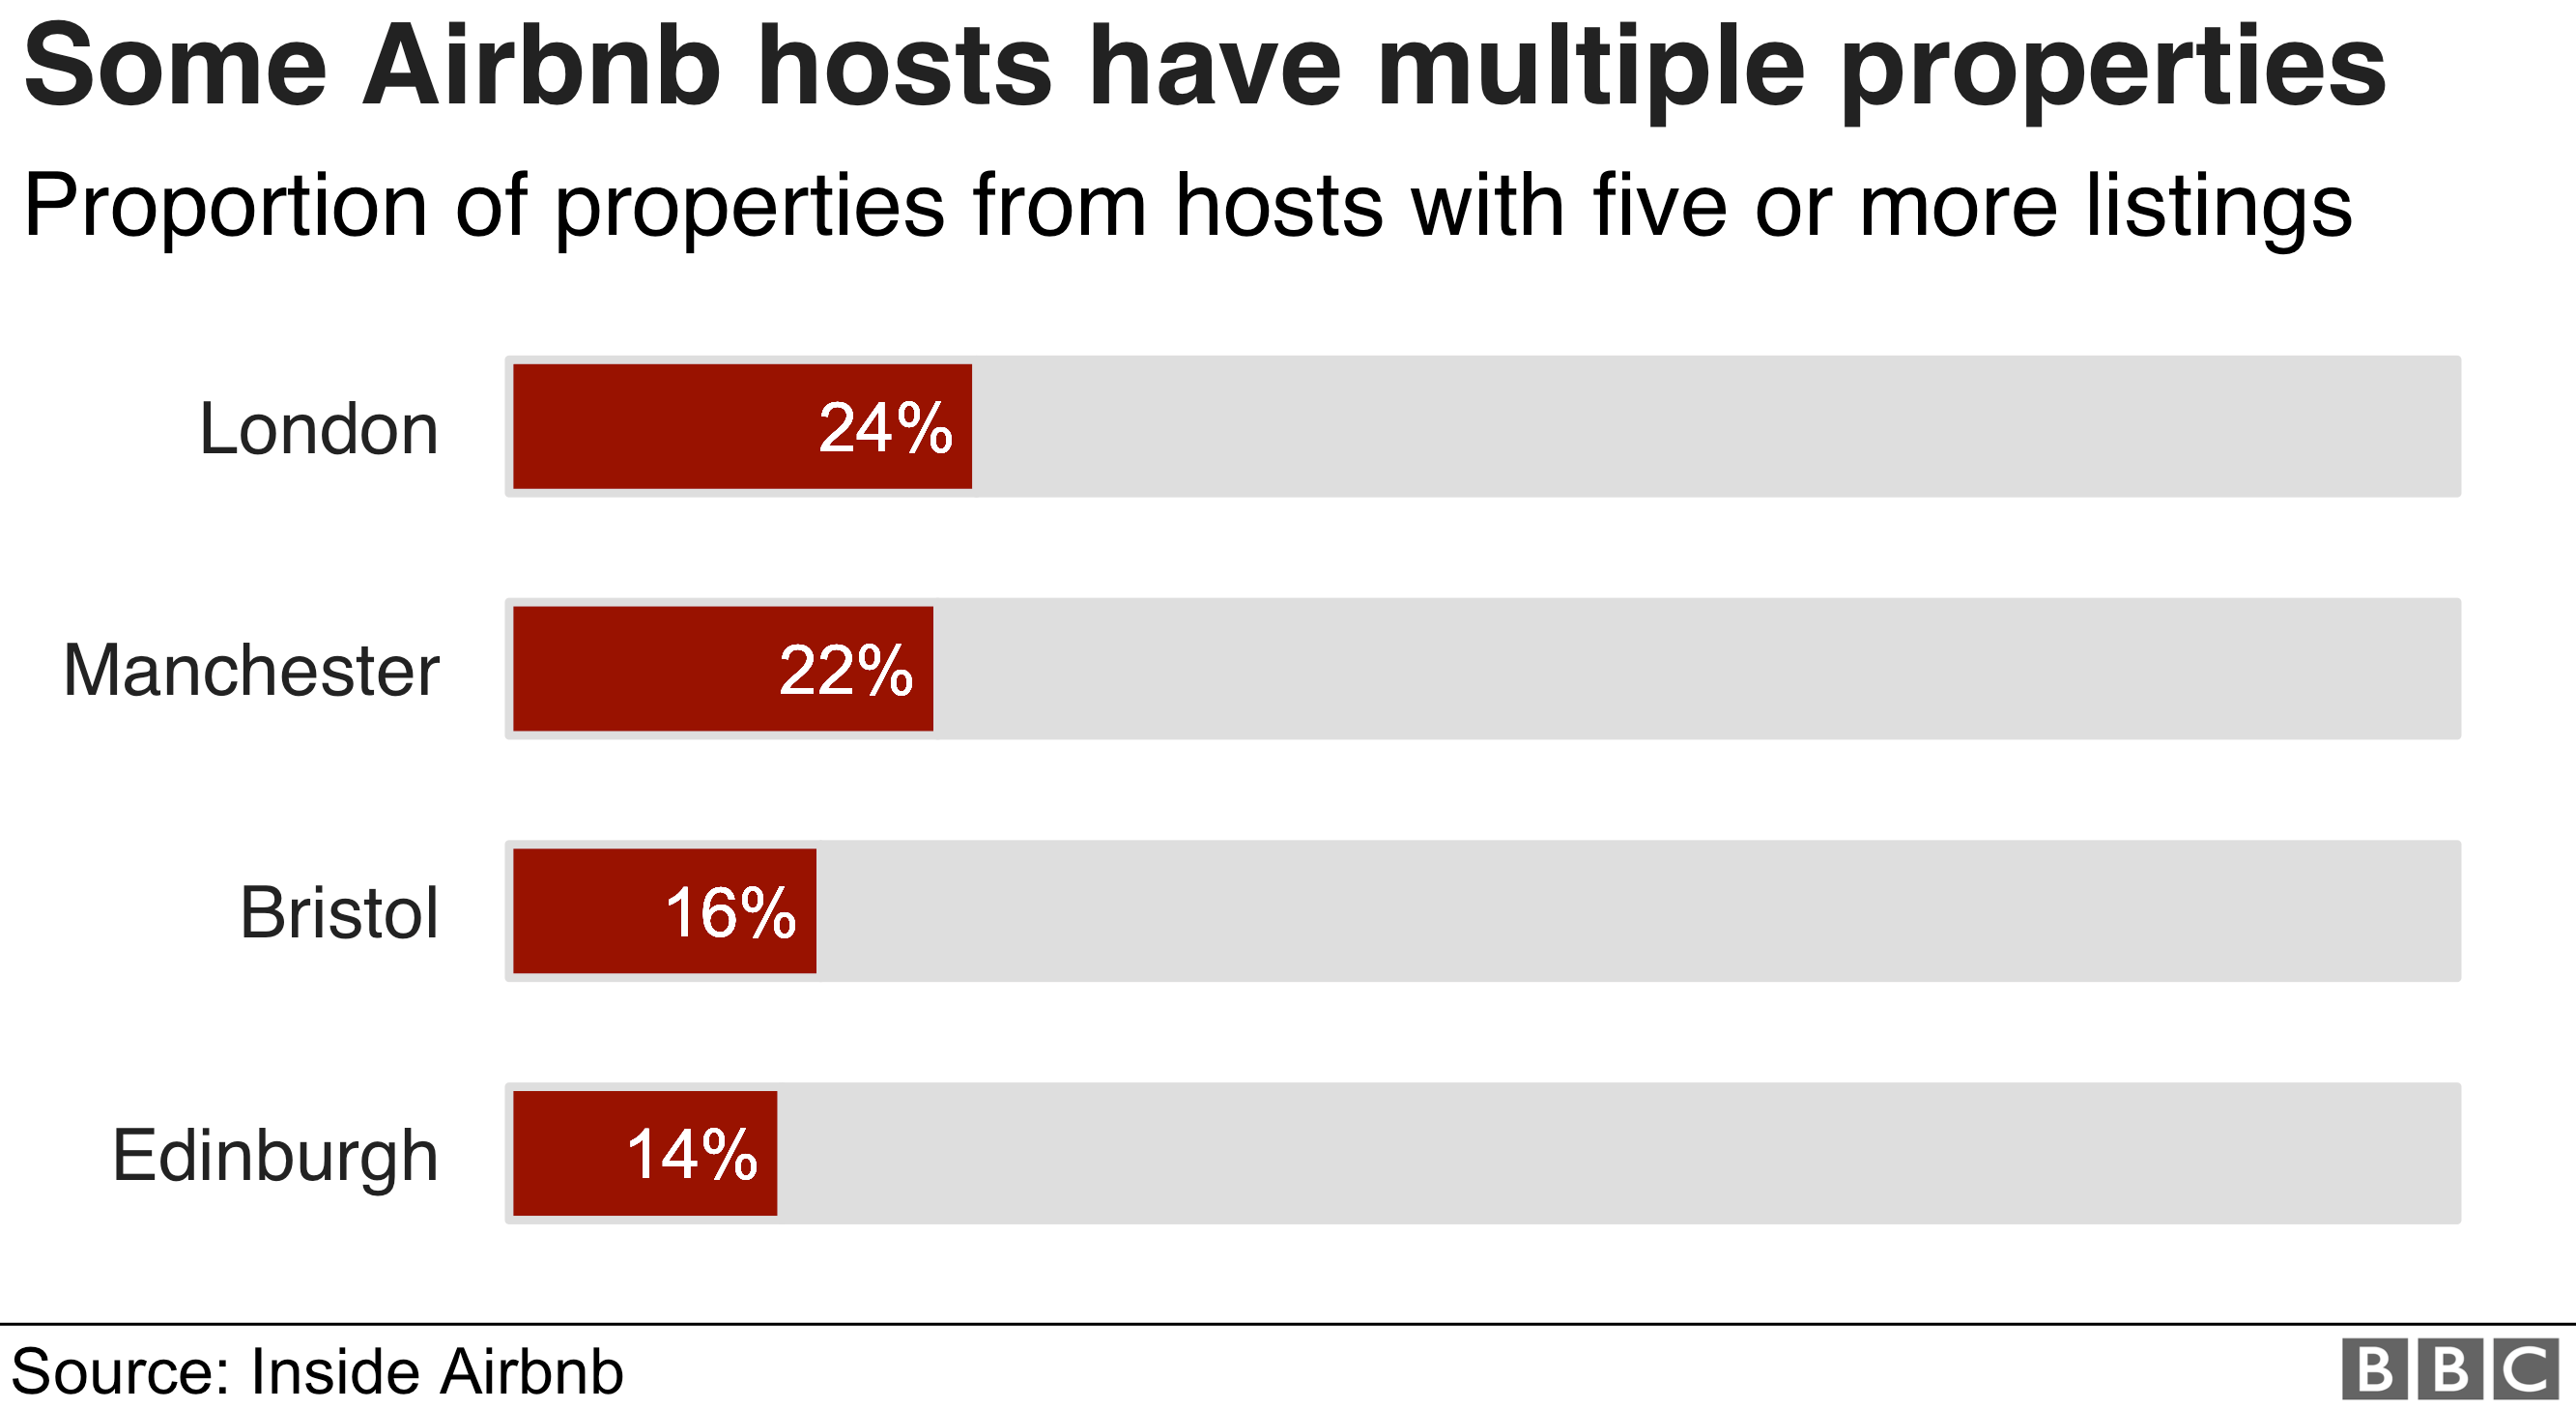 Chart showing the proportion of Airbnb listings that come from hosts with five or more properties